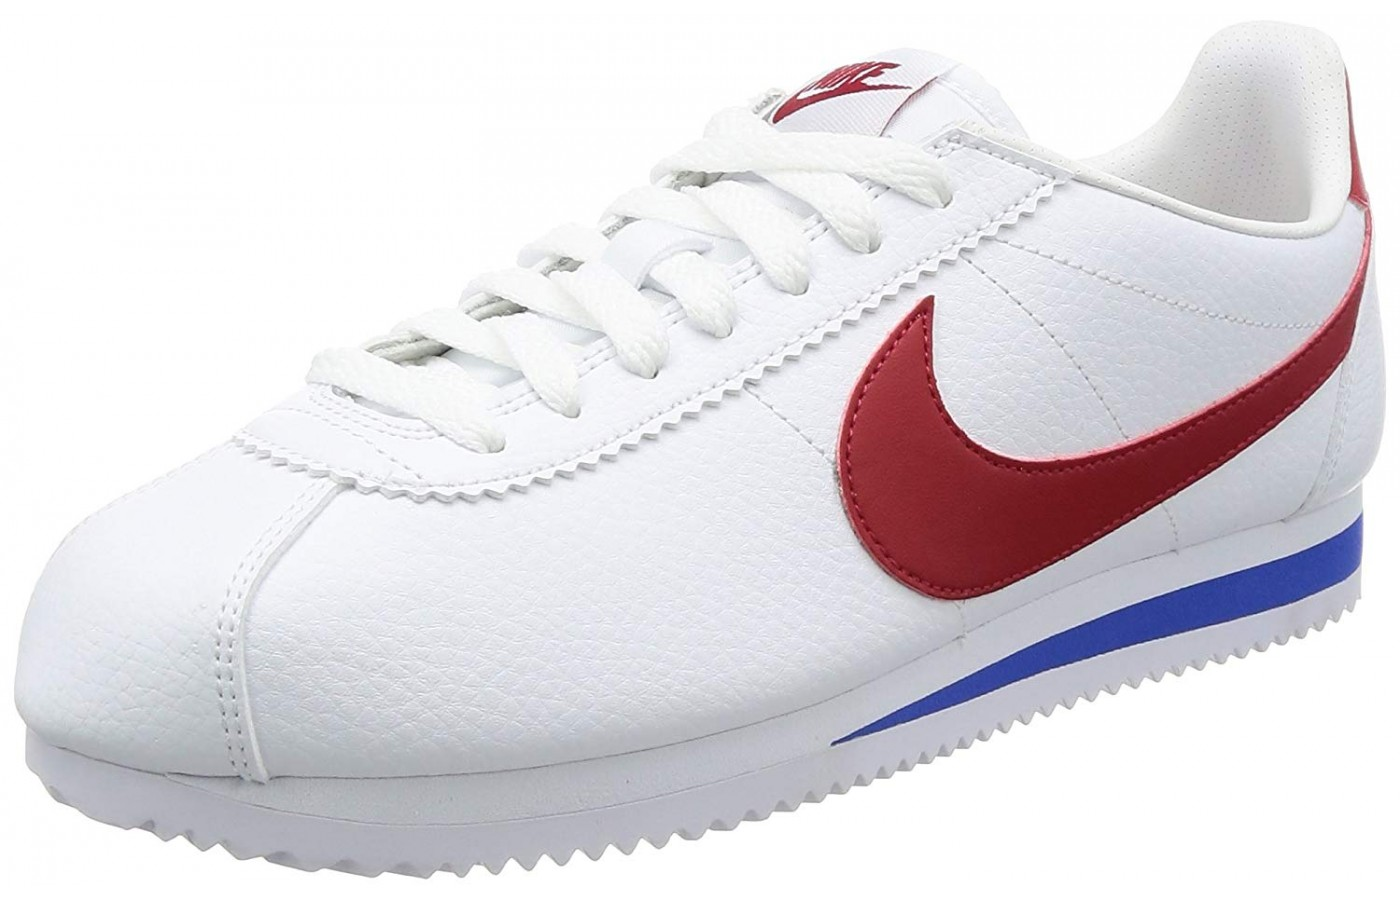 e7190f6828d Nike Cortez Forrest Gump Reviewed for Performance - WalkJogRun